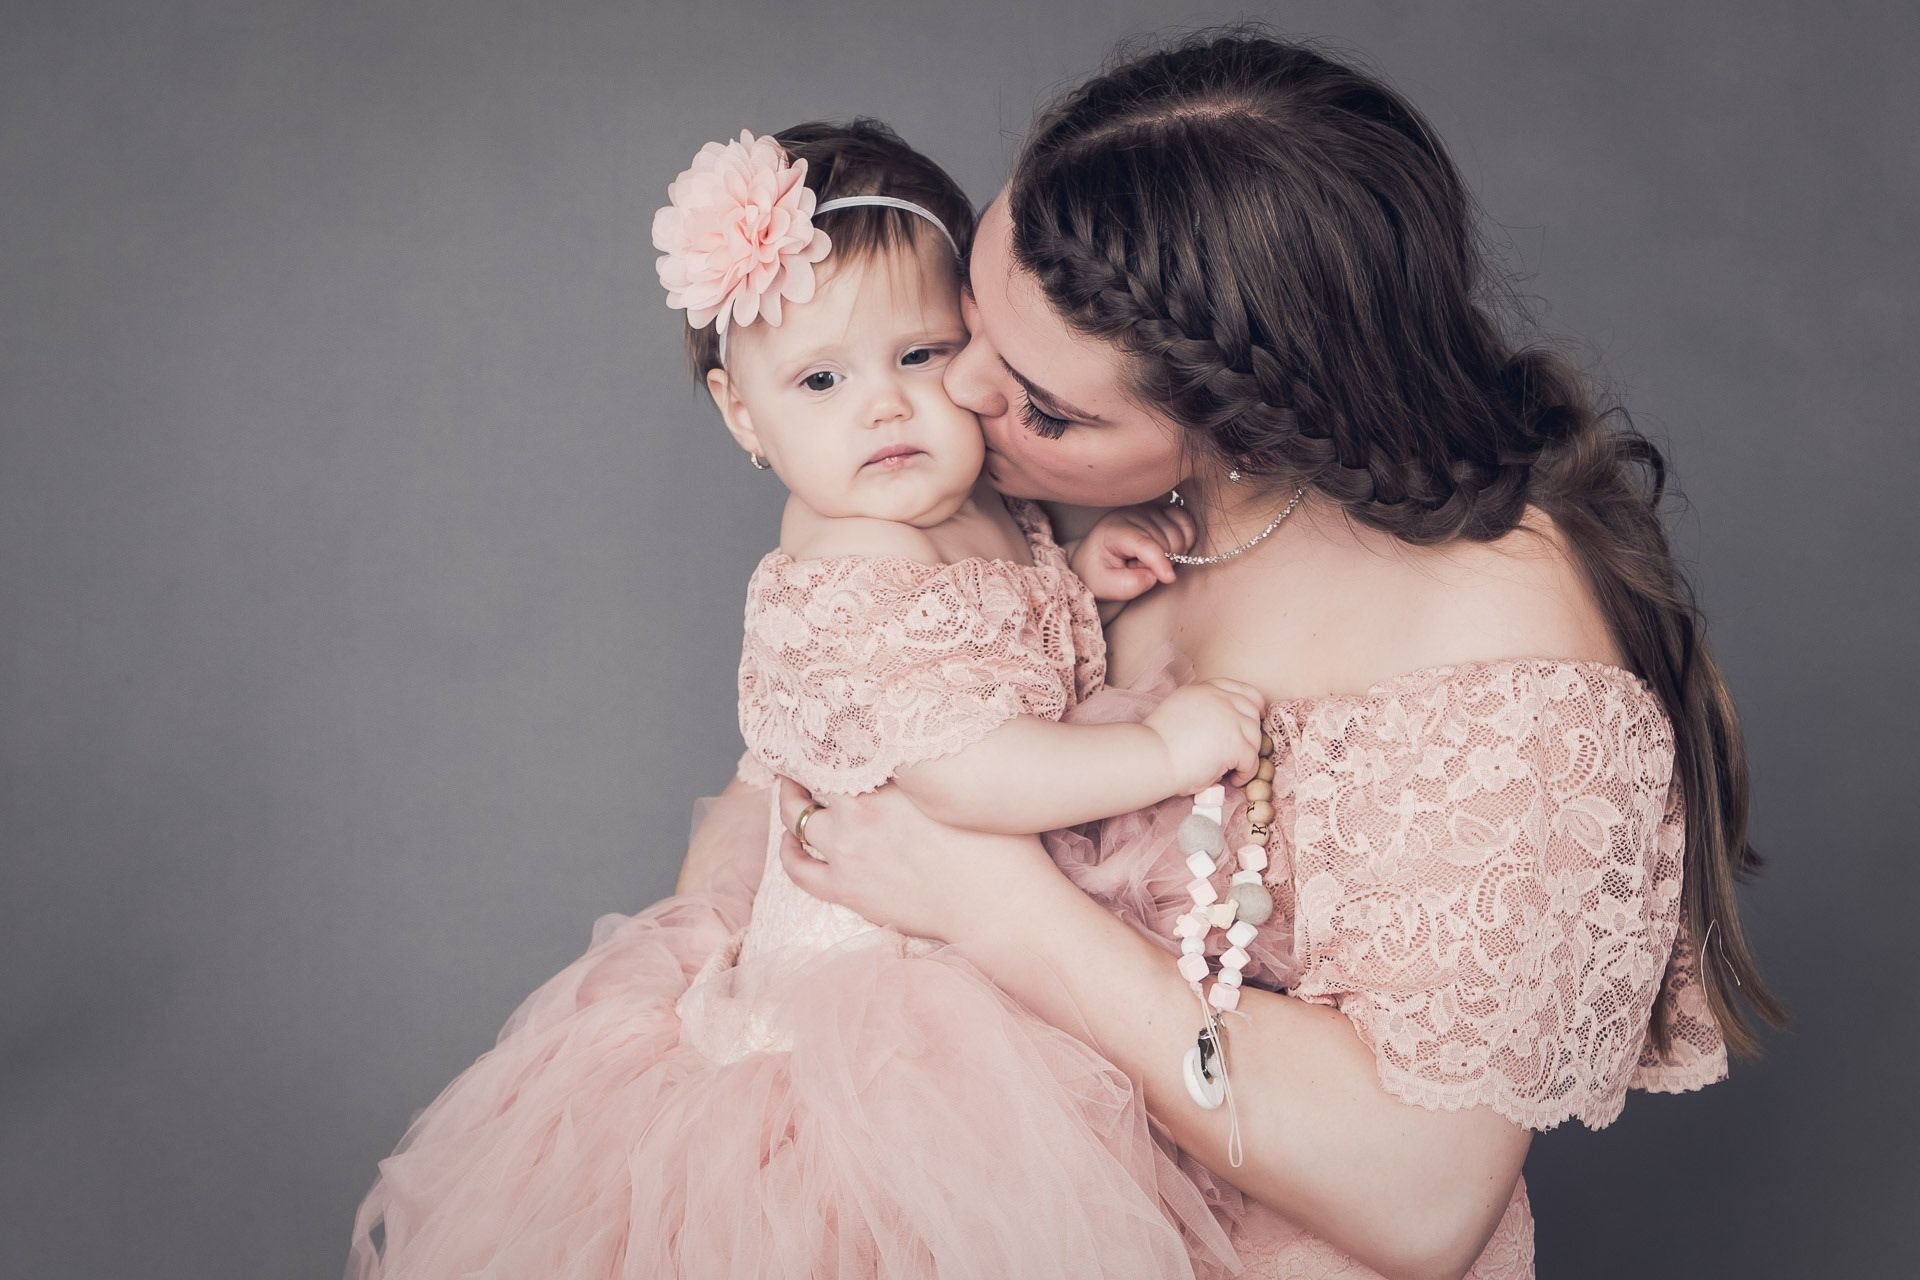 Photo of Mommy and me lace dresses, Blush pink lace dress fr mommy and daughter